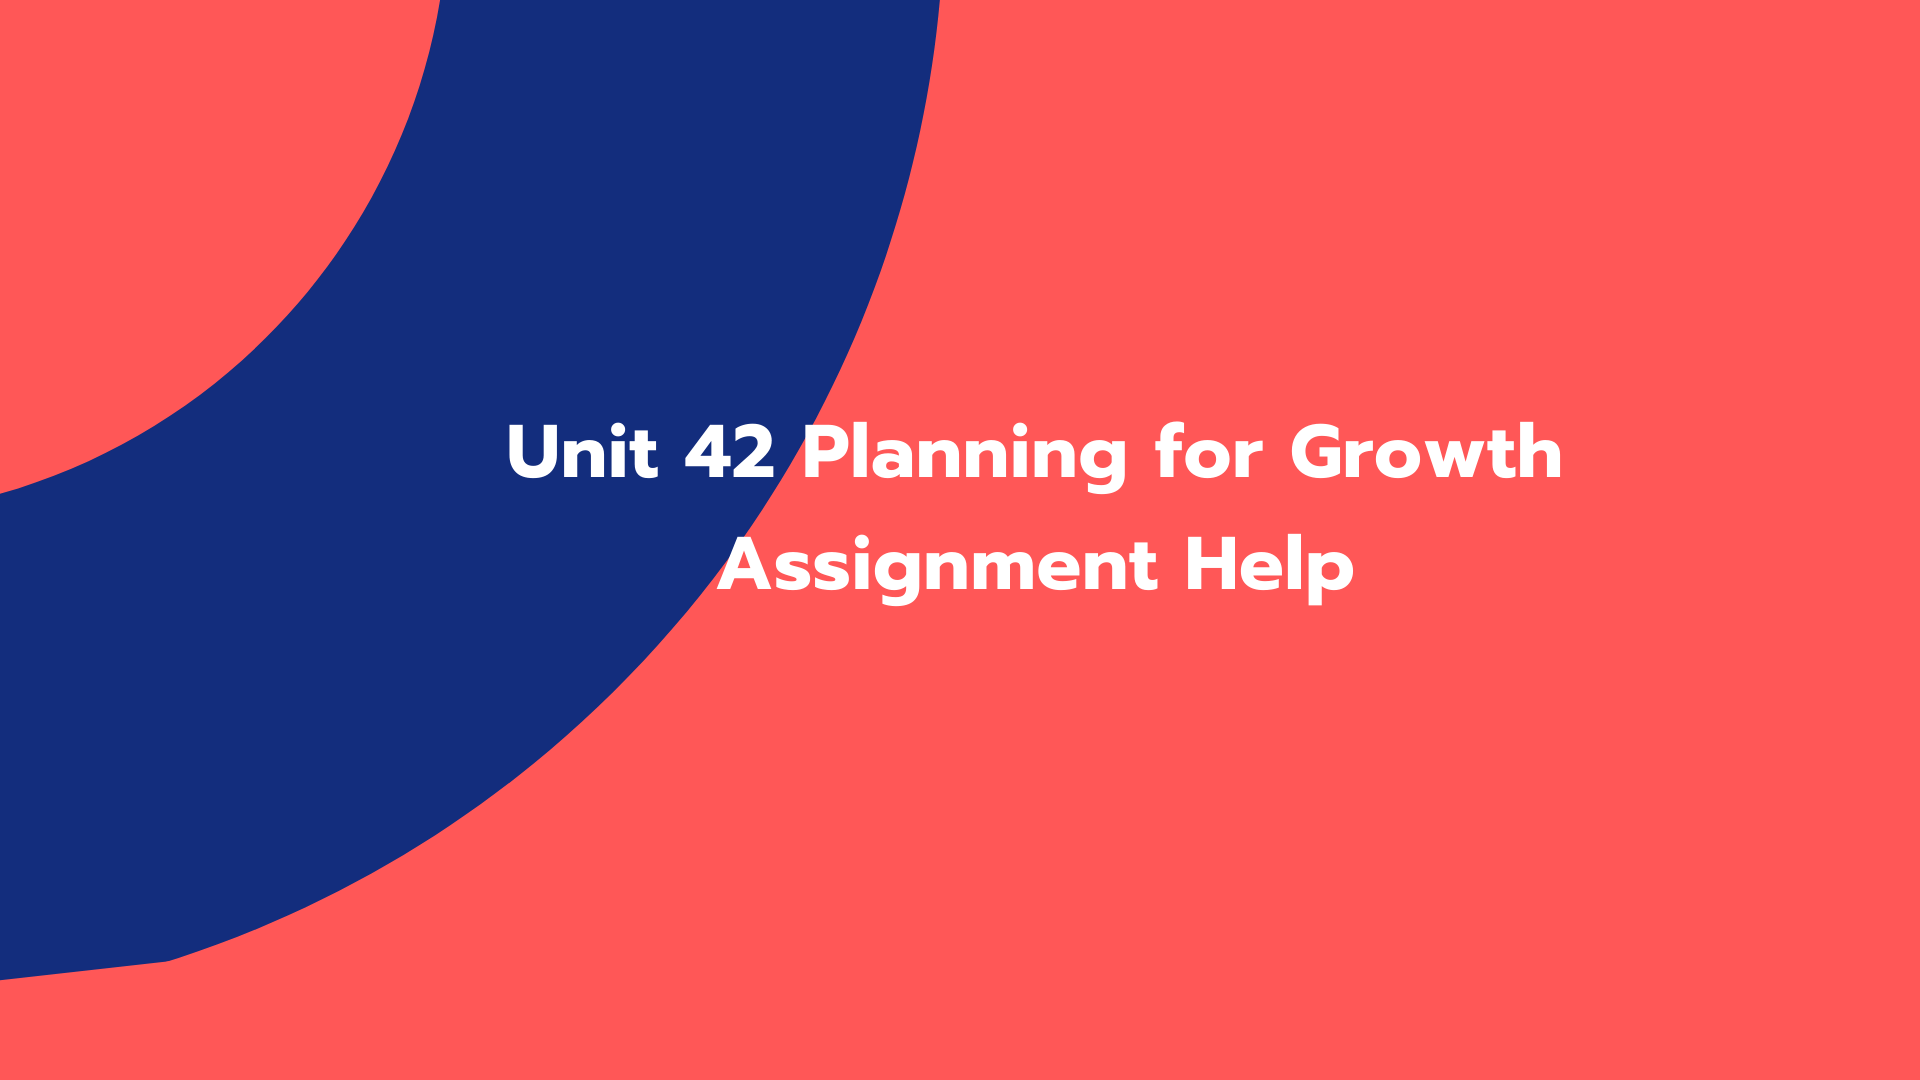 Unit 42 Planning for Growth Assignment Help